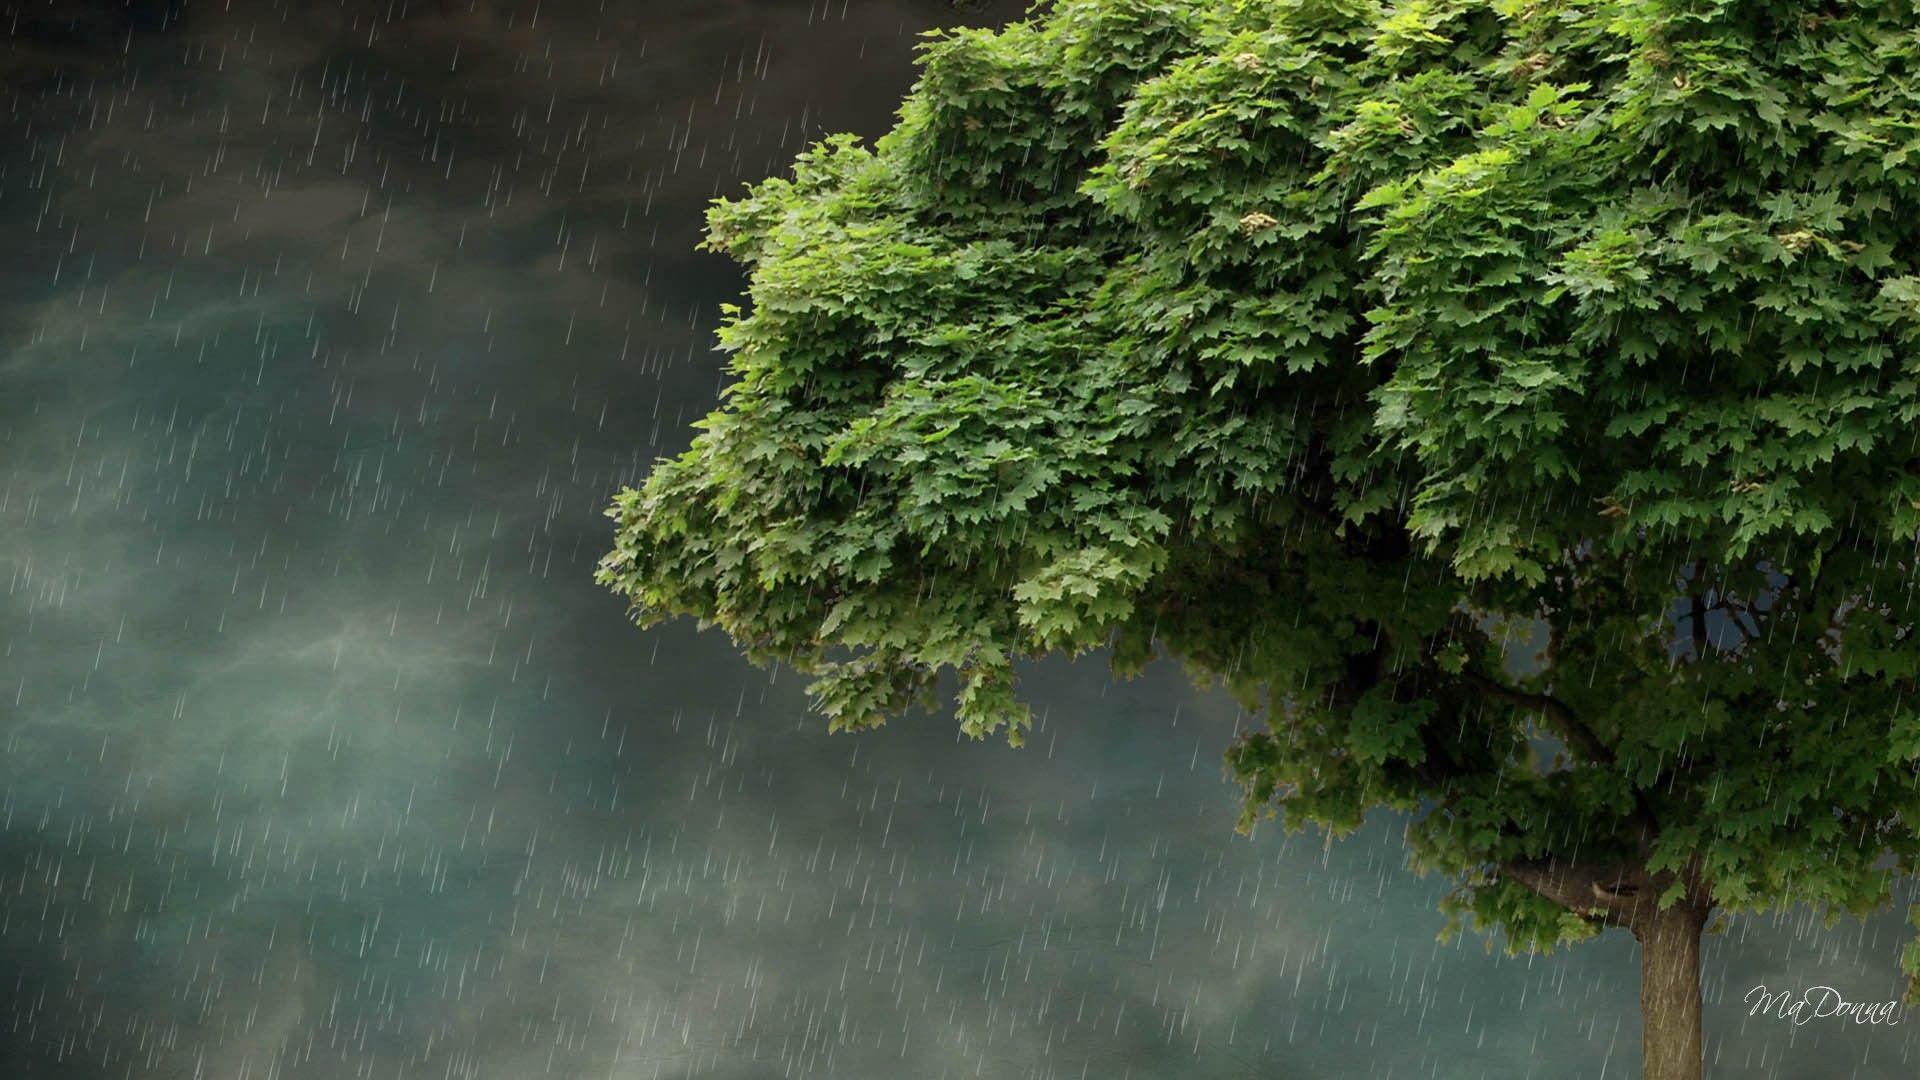 Spring Rain Wallpapers Background Free Download Rain Wallpapers Nature Wallpaper Artistic Wallpaper